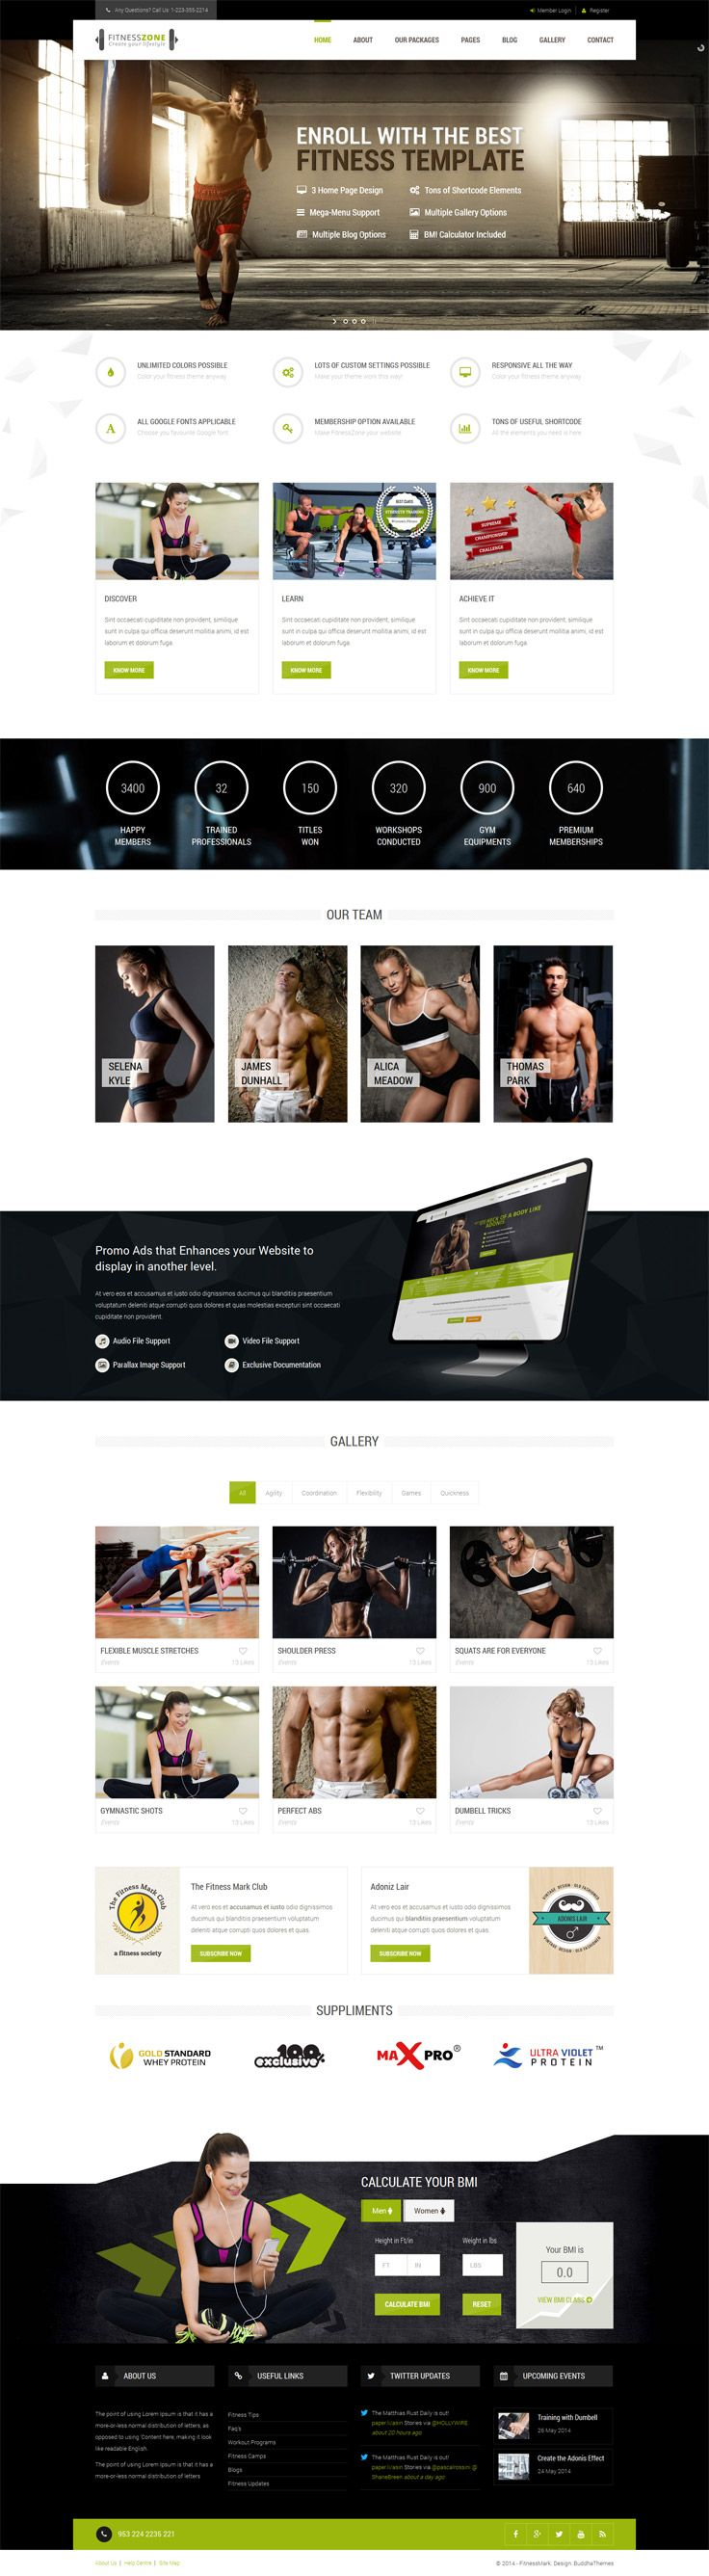 #Fitness Zone website #template muscled for modern trend, gyms, sport club or fitness center and personal trainers! Fully #responsive layout that looks great on mobile and tablet devices. Effective Skins, easy to edit modules, Mega Menu, Sticky Navigation, Mobile Nav for Smart Phones, Blog page with comments, filterable portfolio with details page variations, responsive Short-codes and working contact form page with map. Mega pack template for your website to impress your site visitors!